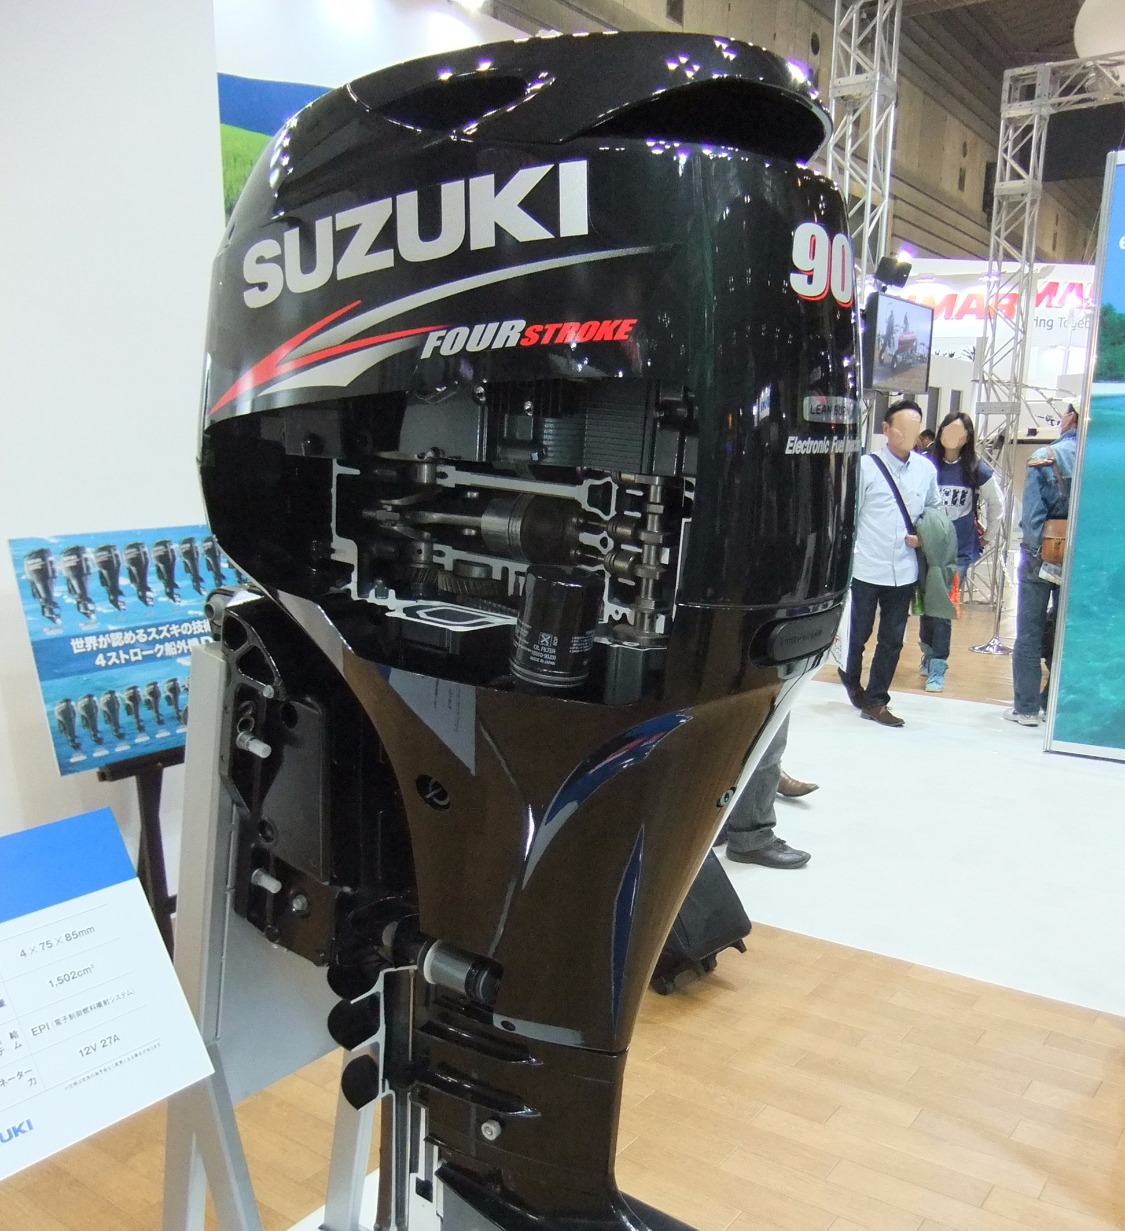 SUZUKI_MARINE,_Engine_DF90AT,_Outboard_motor,_edited